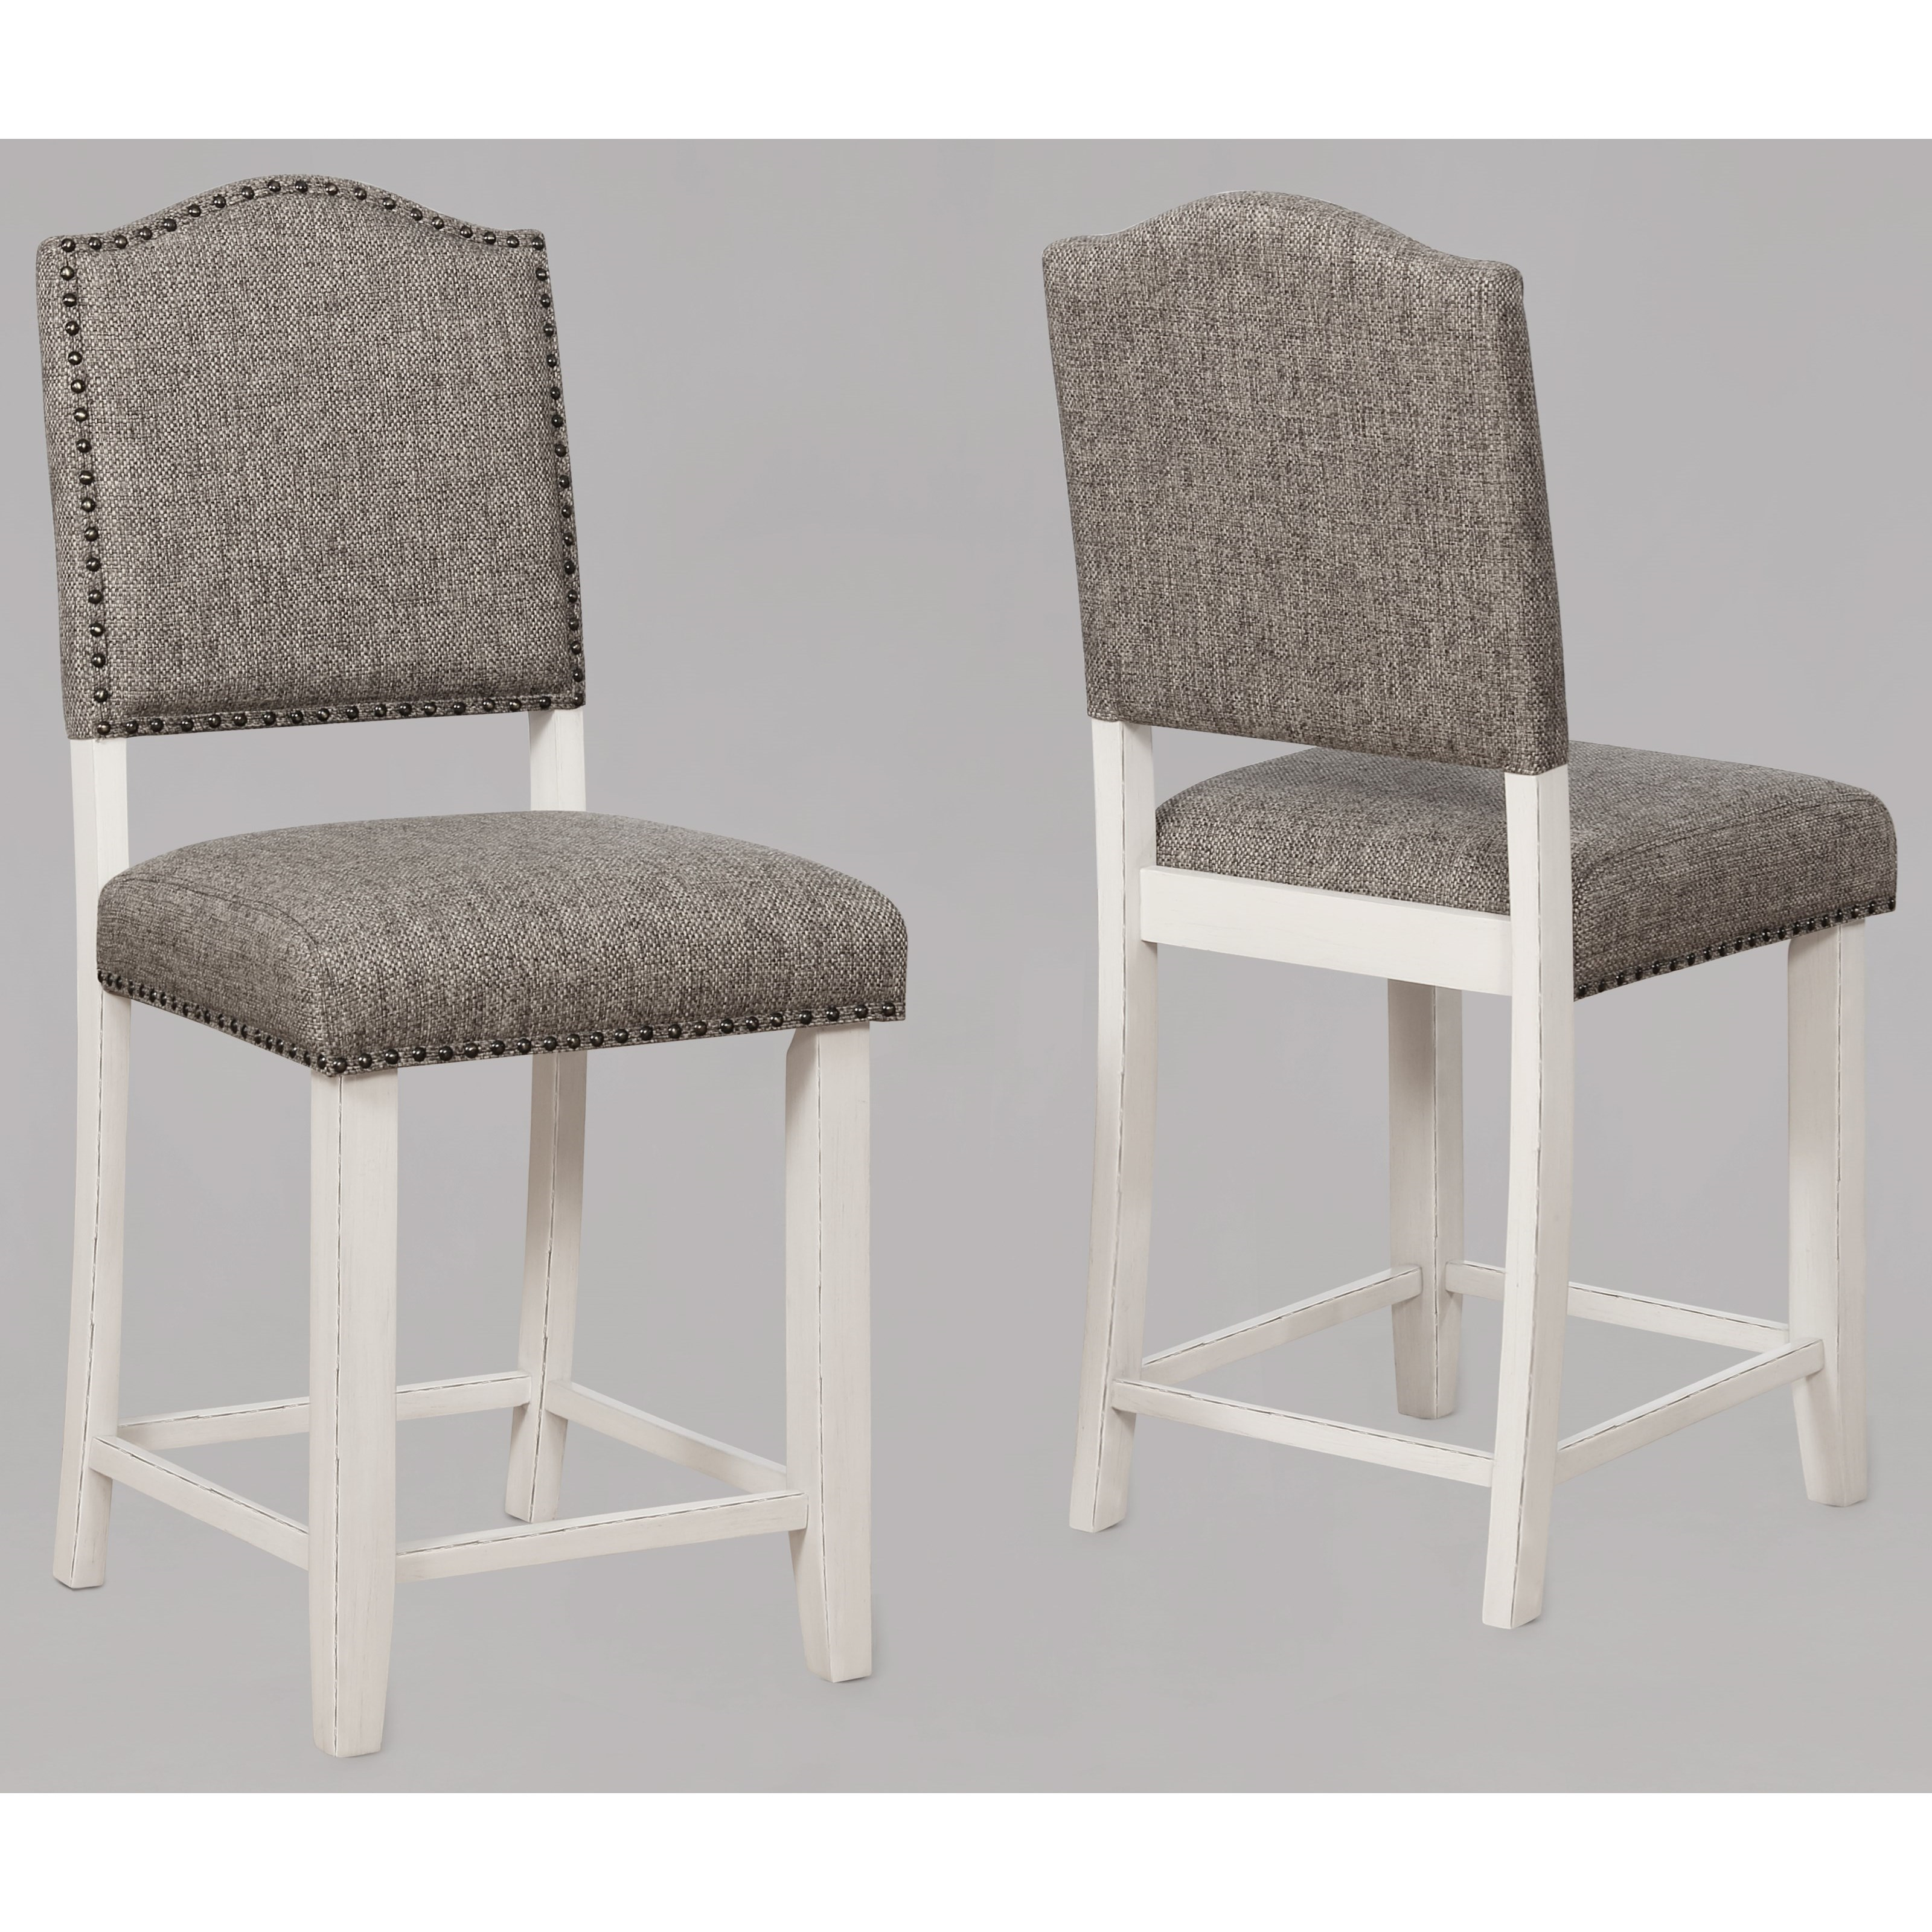 upholstered counter height chairs toy high chair target crown mark clover 2765s 24 with